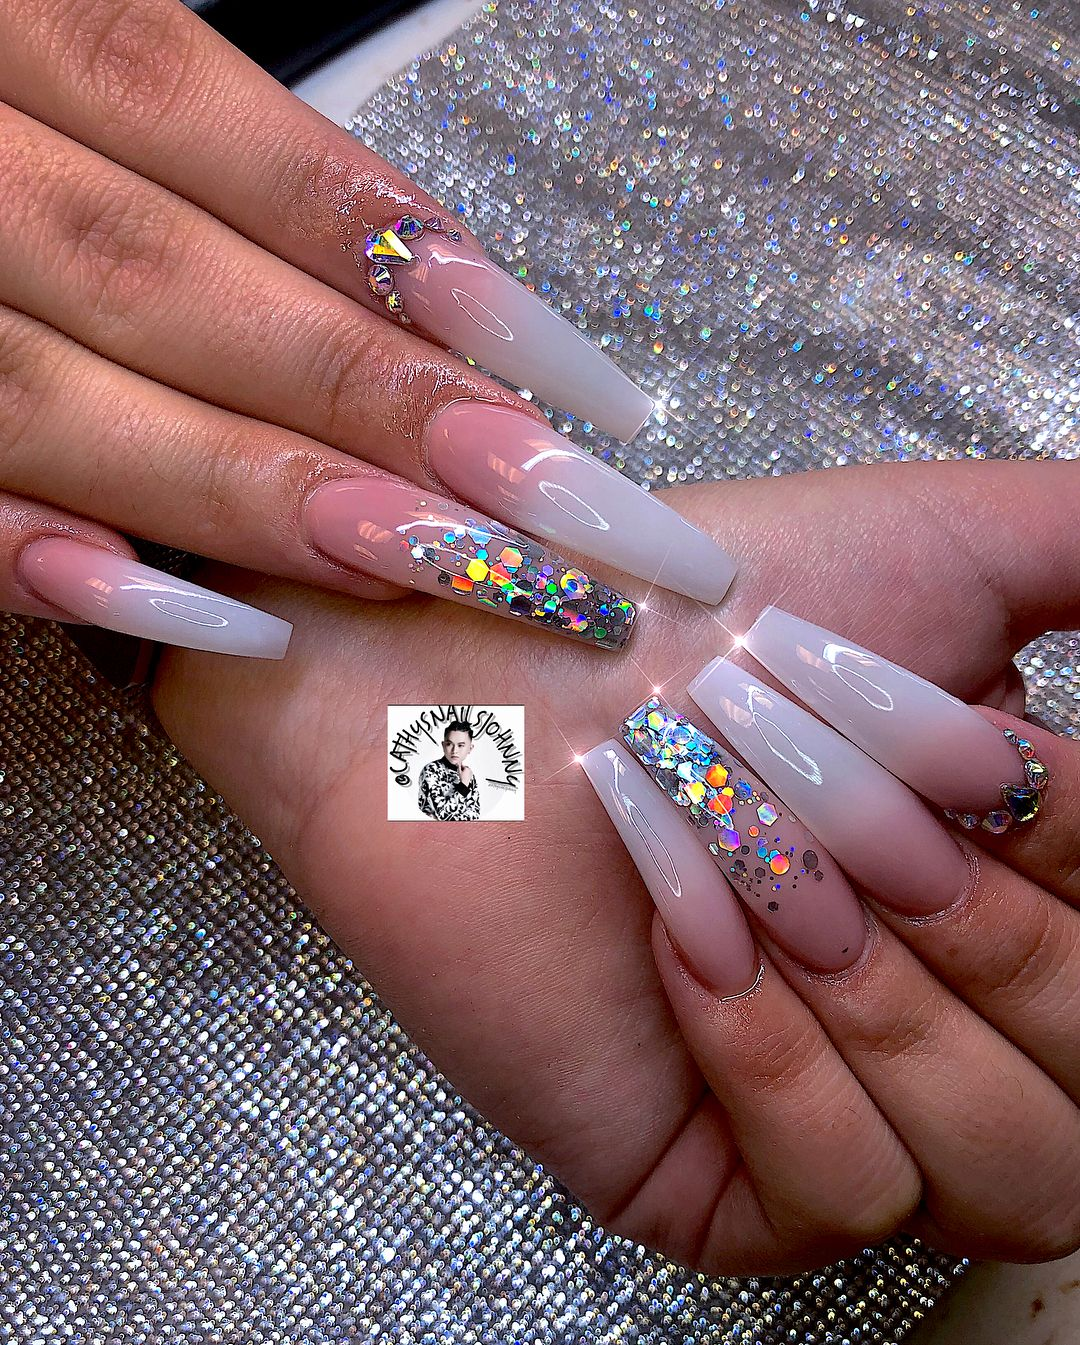 Image May Contain One Or More People And Closeup Coffin Nails Designs Pretty Acrylic Nails Long Acrylic Nails